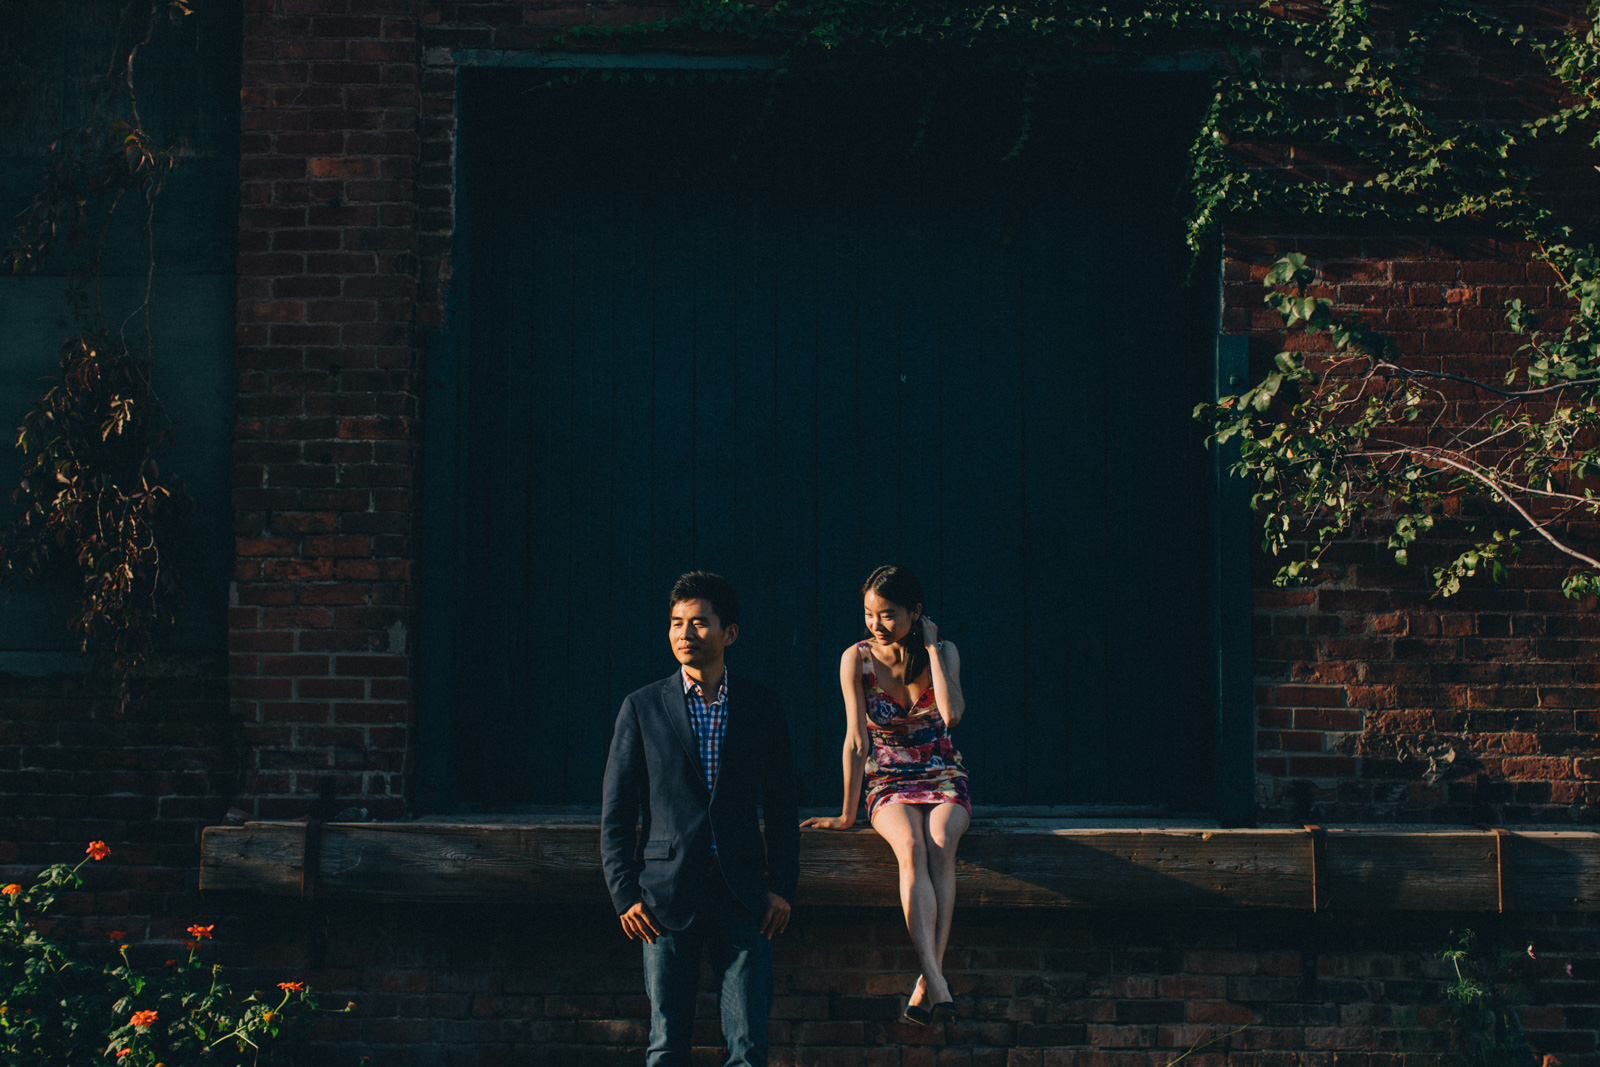 Distillery-District-engagement-photos-Toronto-wedding-photography-by-Sam-Wong-of-Artanis-Collective_009.jpg